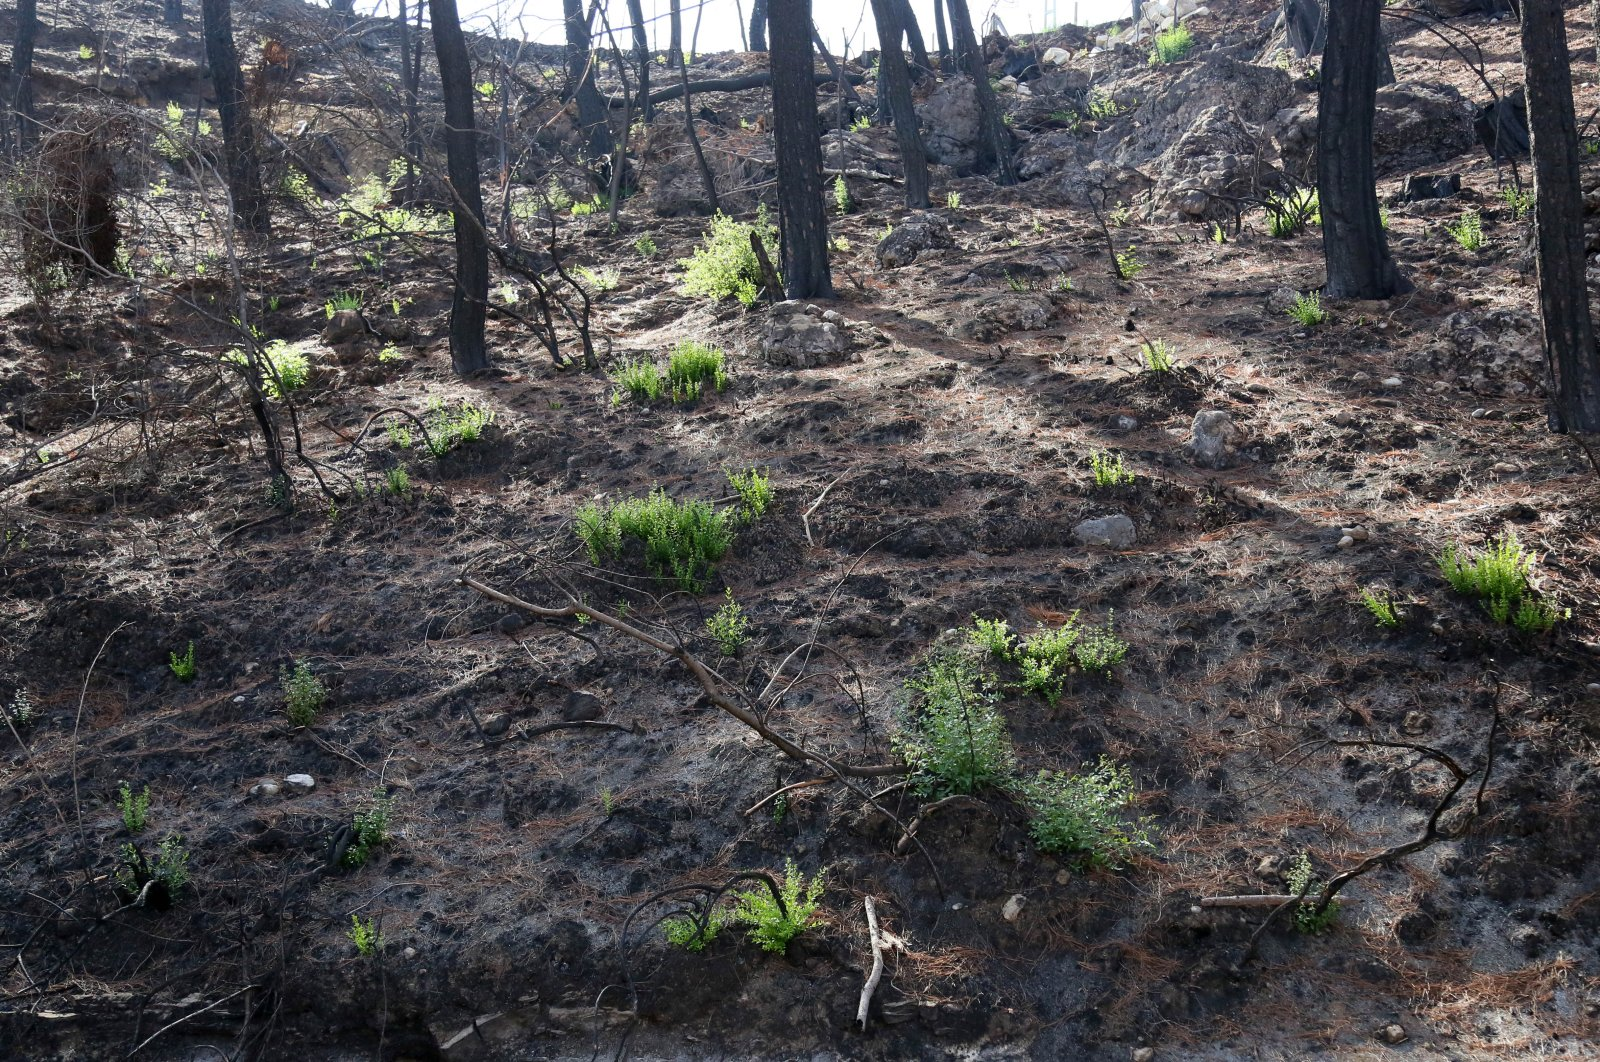 A view of plants growing after wildfires were put out in a forest in Manavgat, Antalya, southern Turkey, Sept. 19, 2021. (DHA Photo)